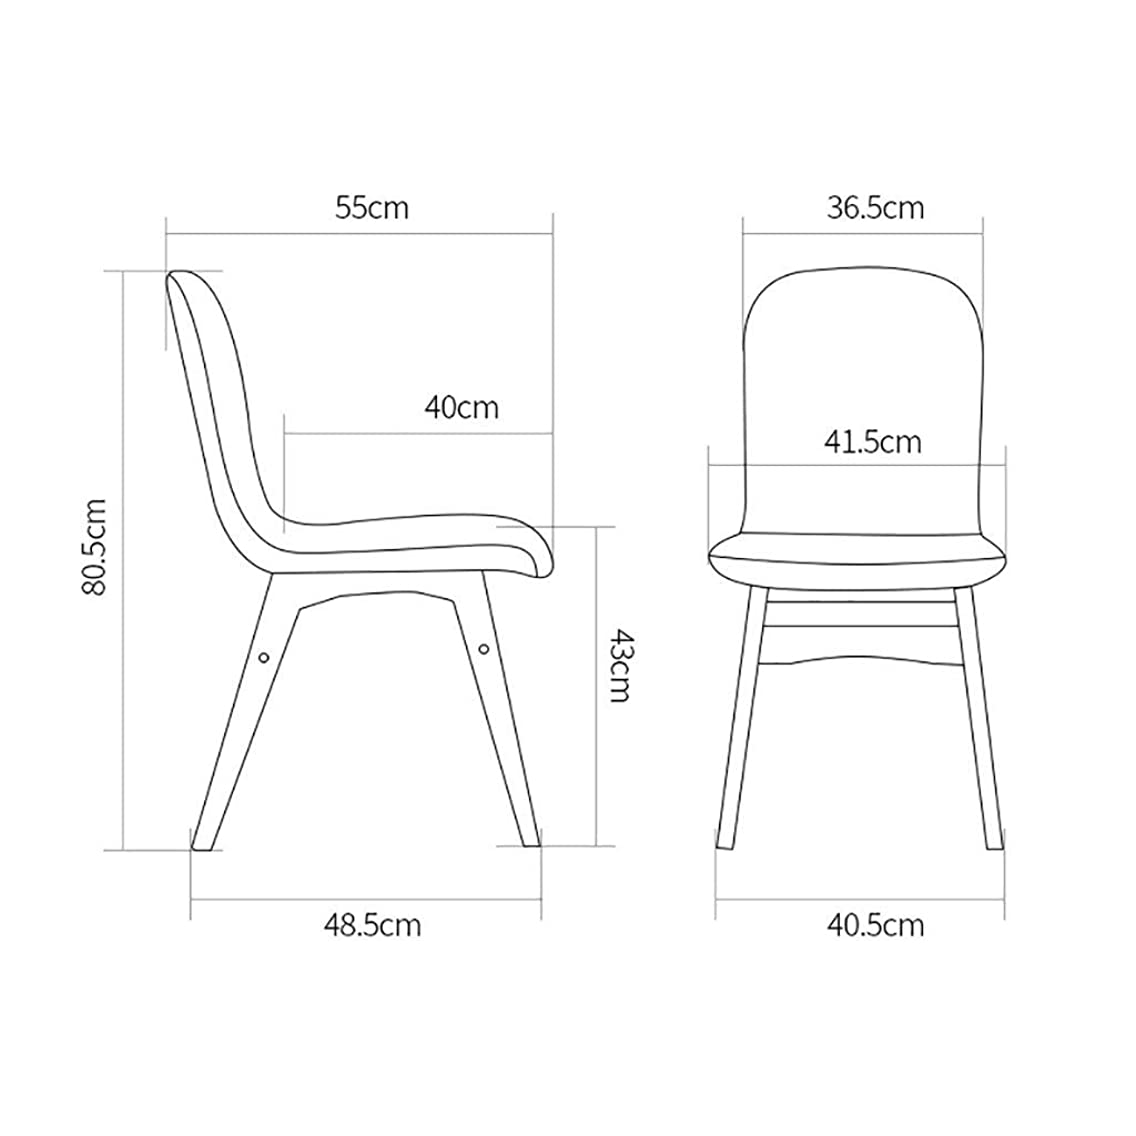 XE Solid Wood Dining Chair, Leisure Bench,Home Furniture Lounge Chair Wood Dining Chair Simple Comfortable Study Chair Leisure Coffee Chair